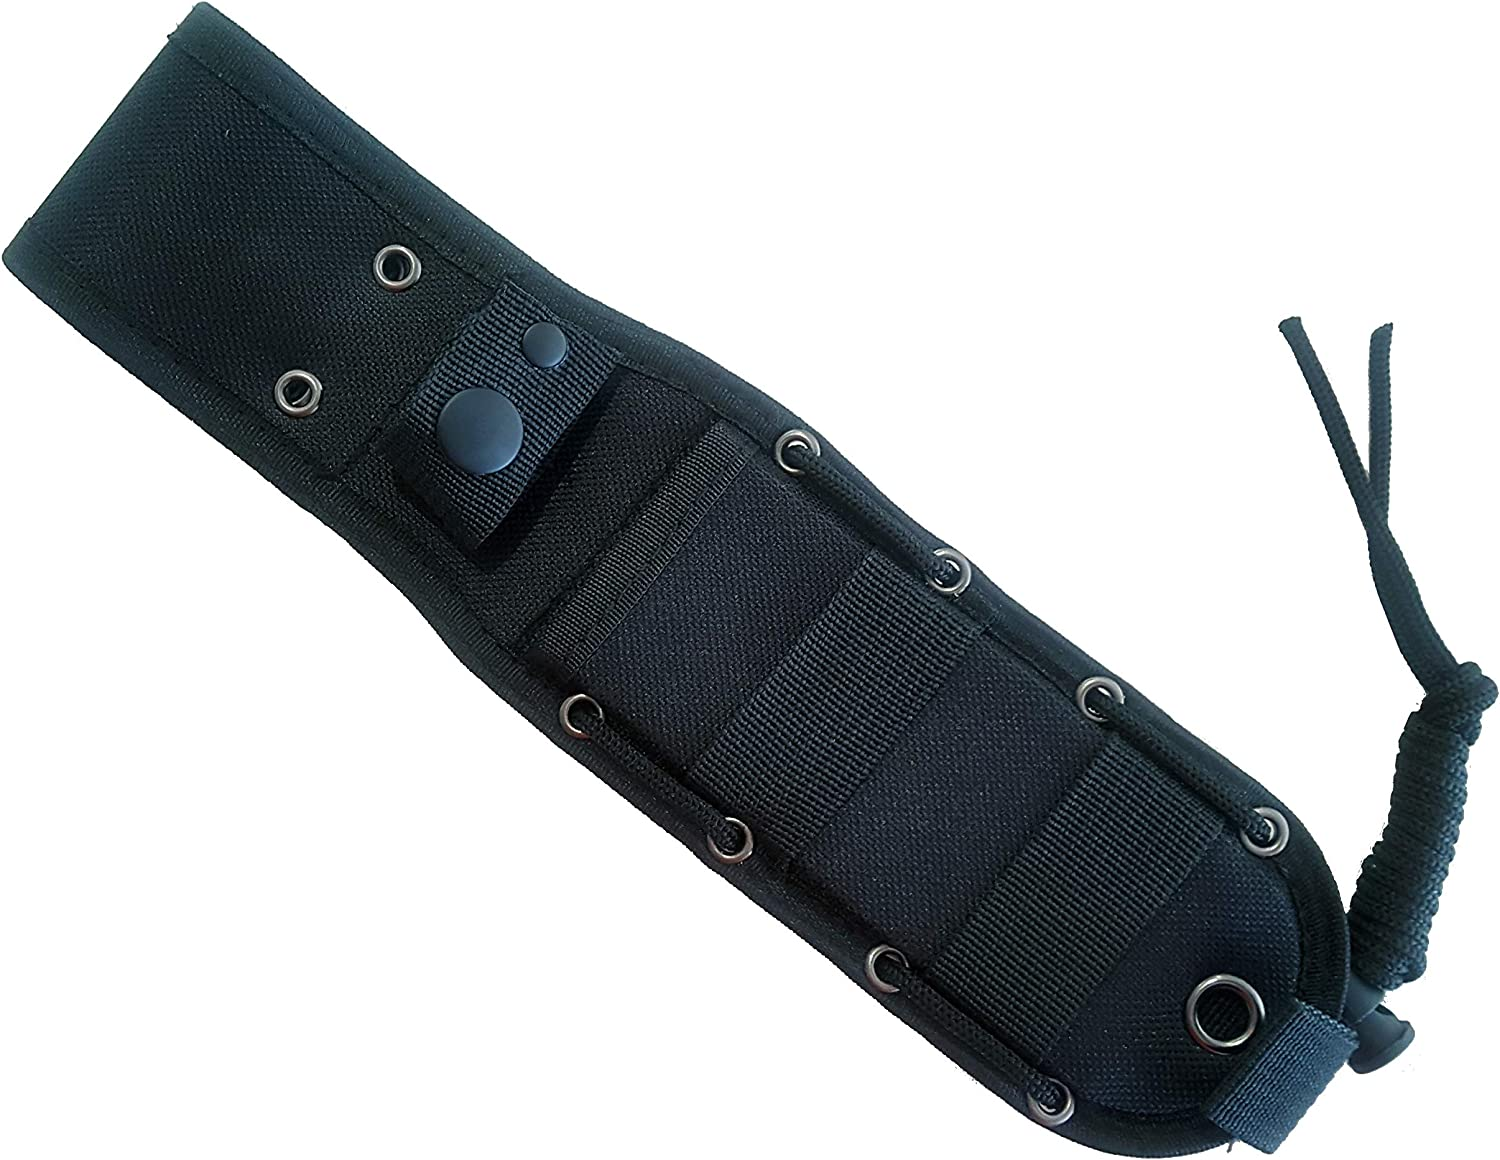 Nylon Sheath for Challenge the lowest Max 46% OFF price of Japan ☆ Knives - Camping Fis Survival Bushcraft Hunting